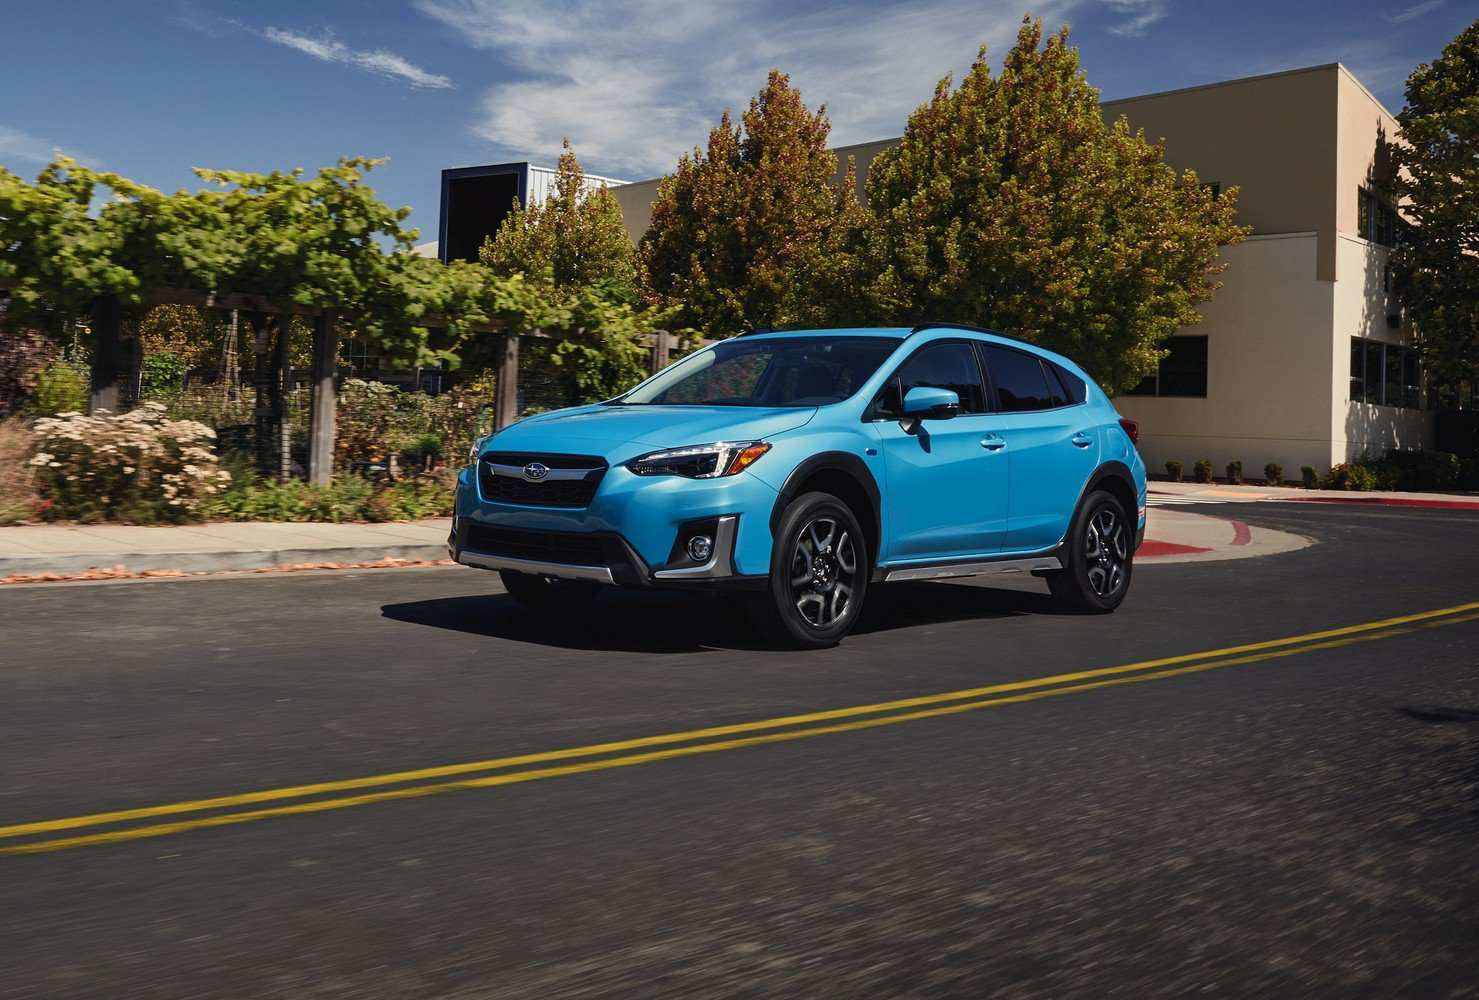 20 New Subaru Xv Hybrid 2019 Price And Release Date